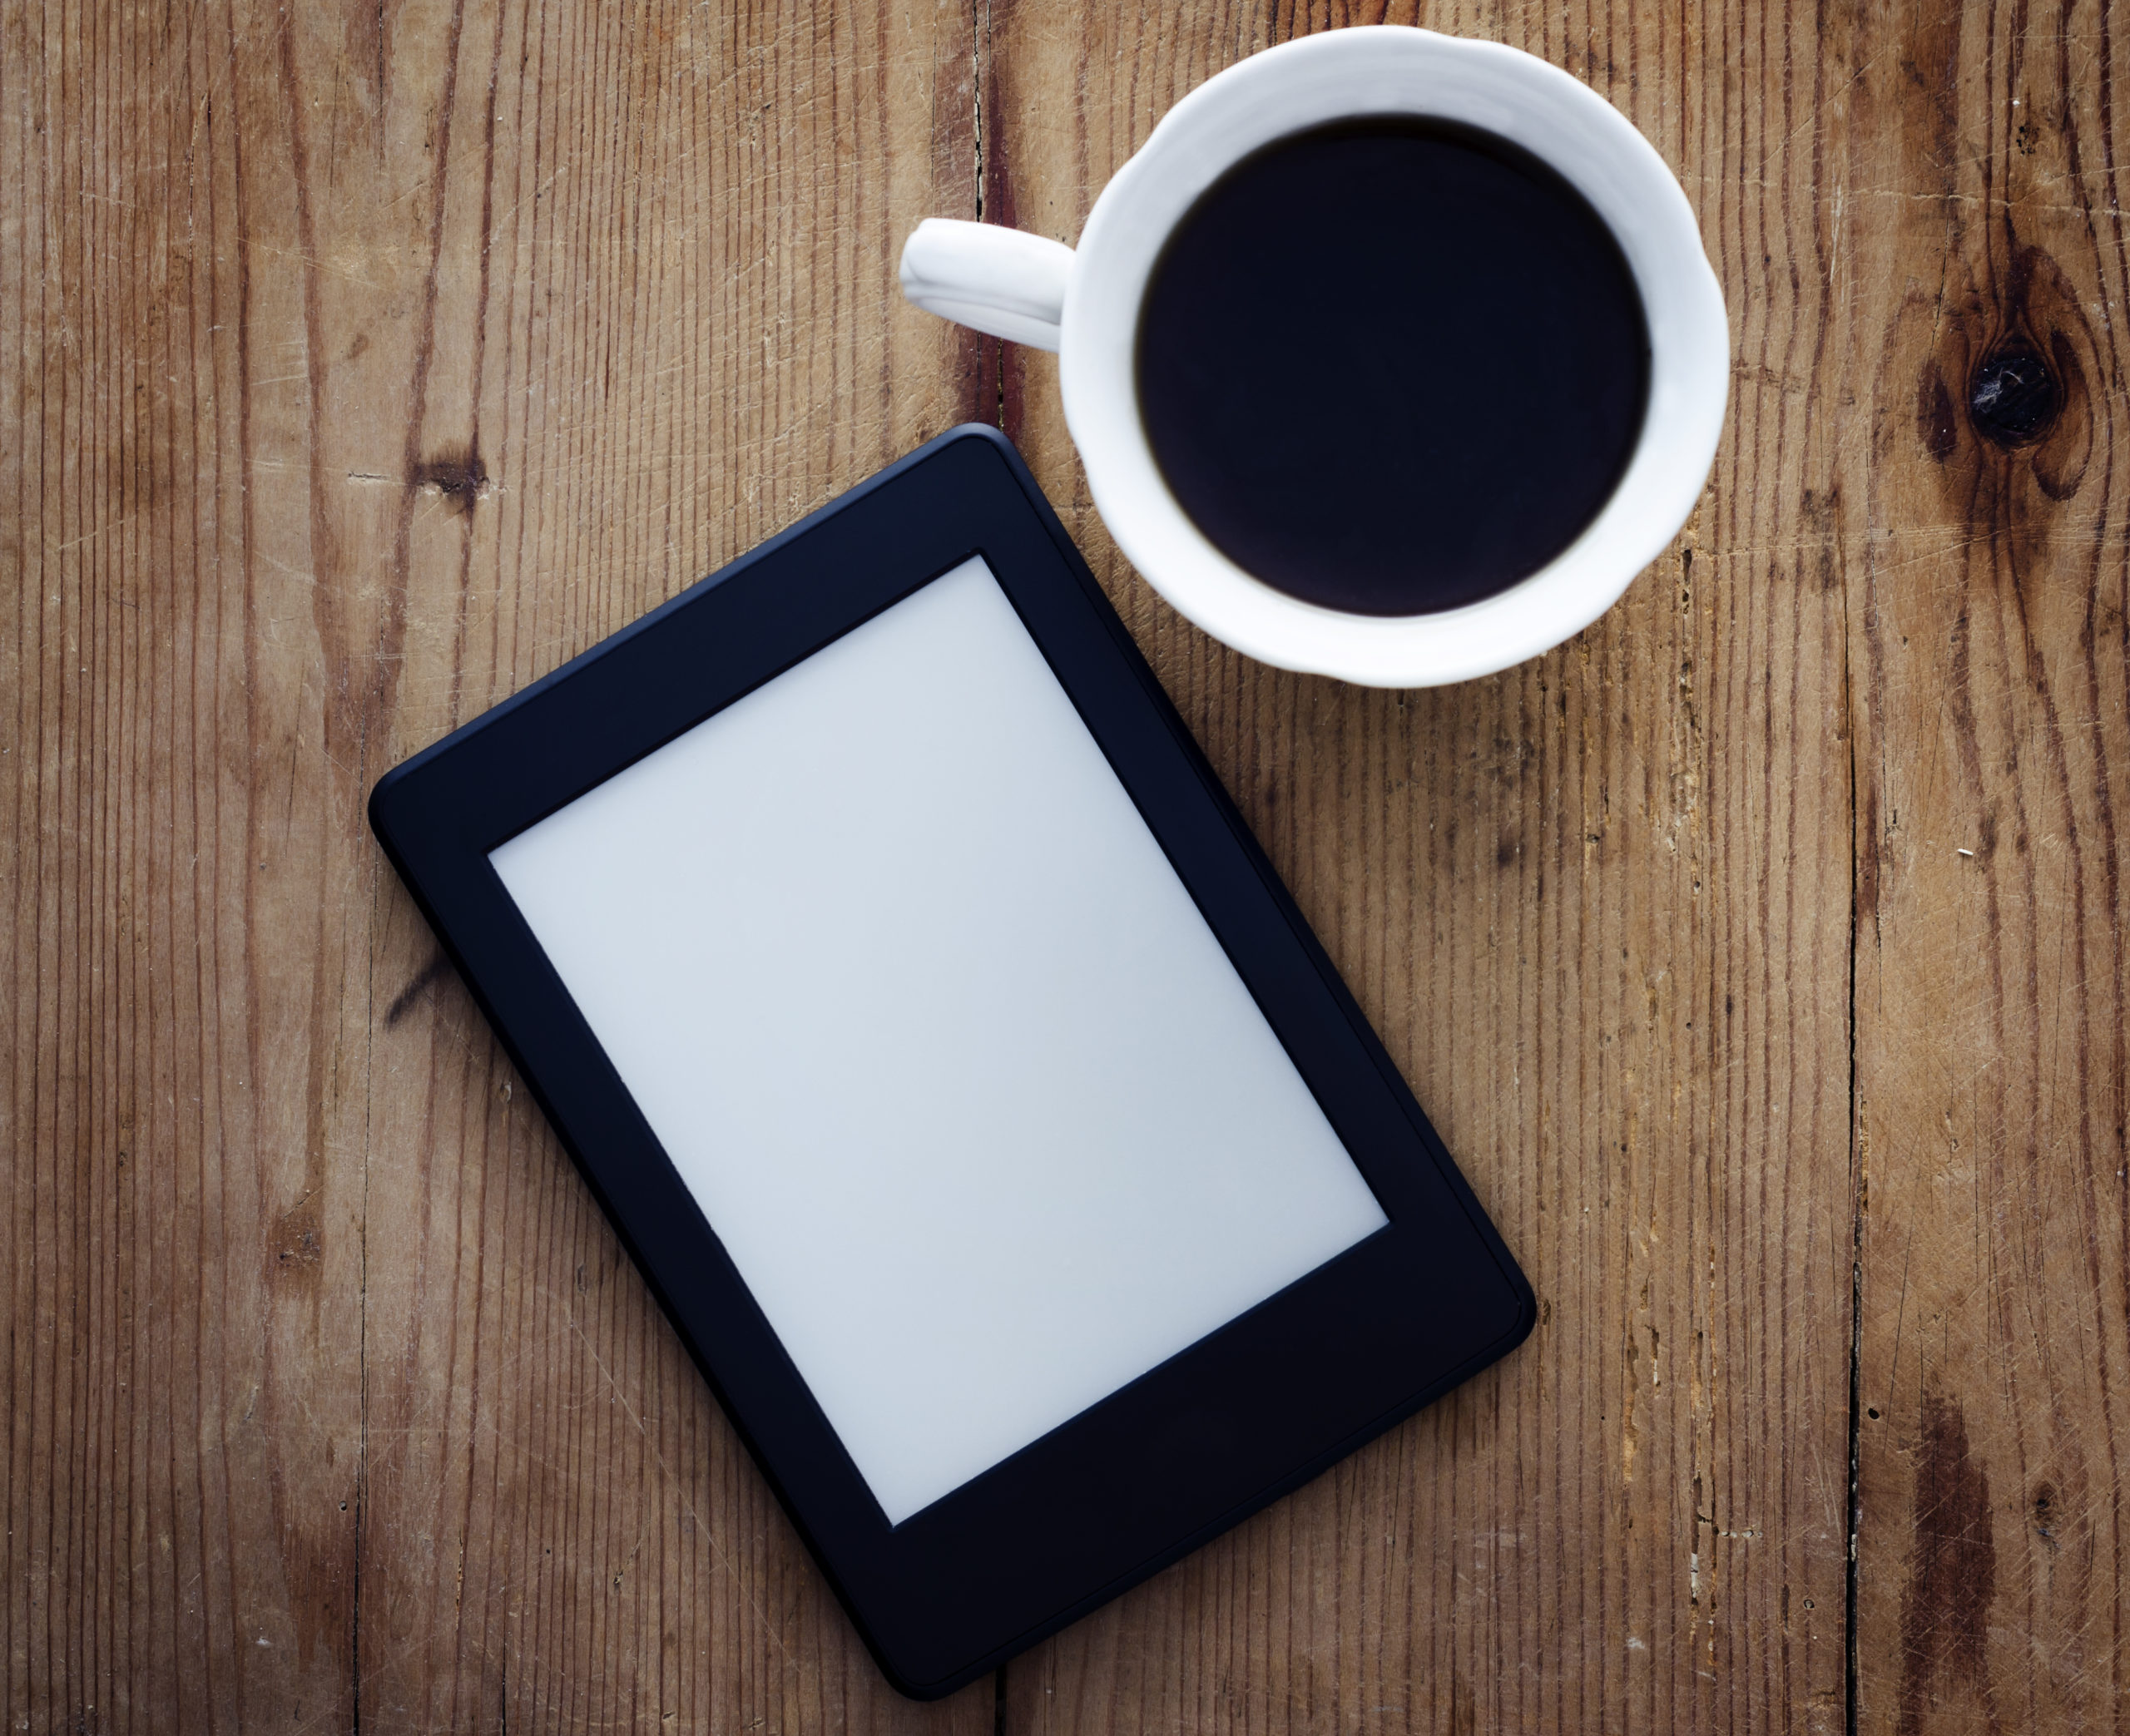 how to delete books from kindle paperwhite https://elements.envato.com/e-book-reader-and-coffee-cup-MZP9XFF